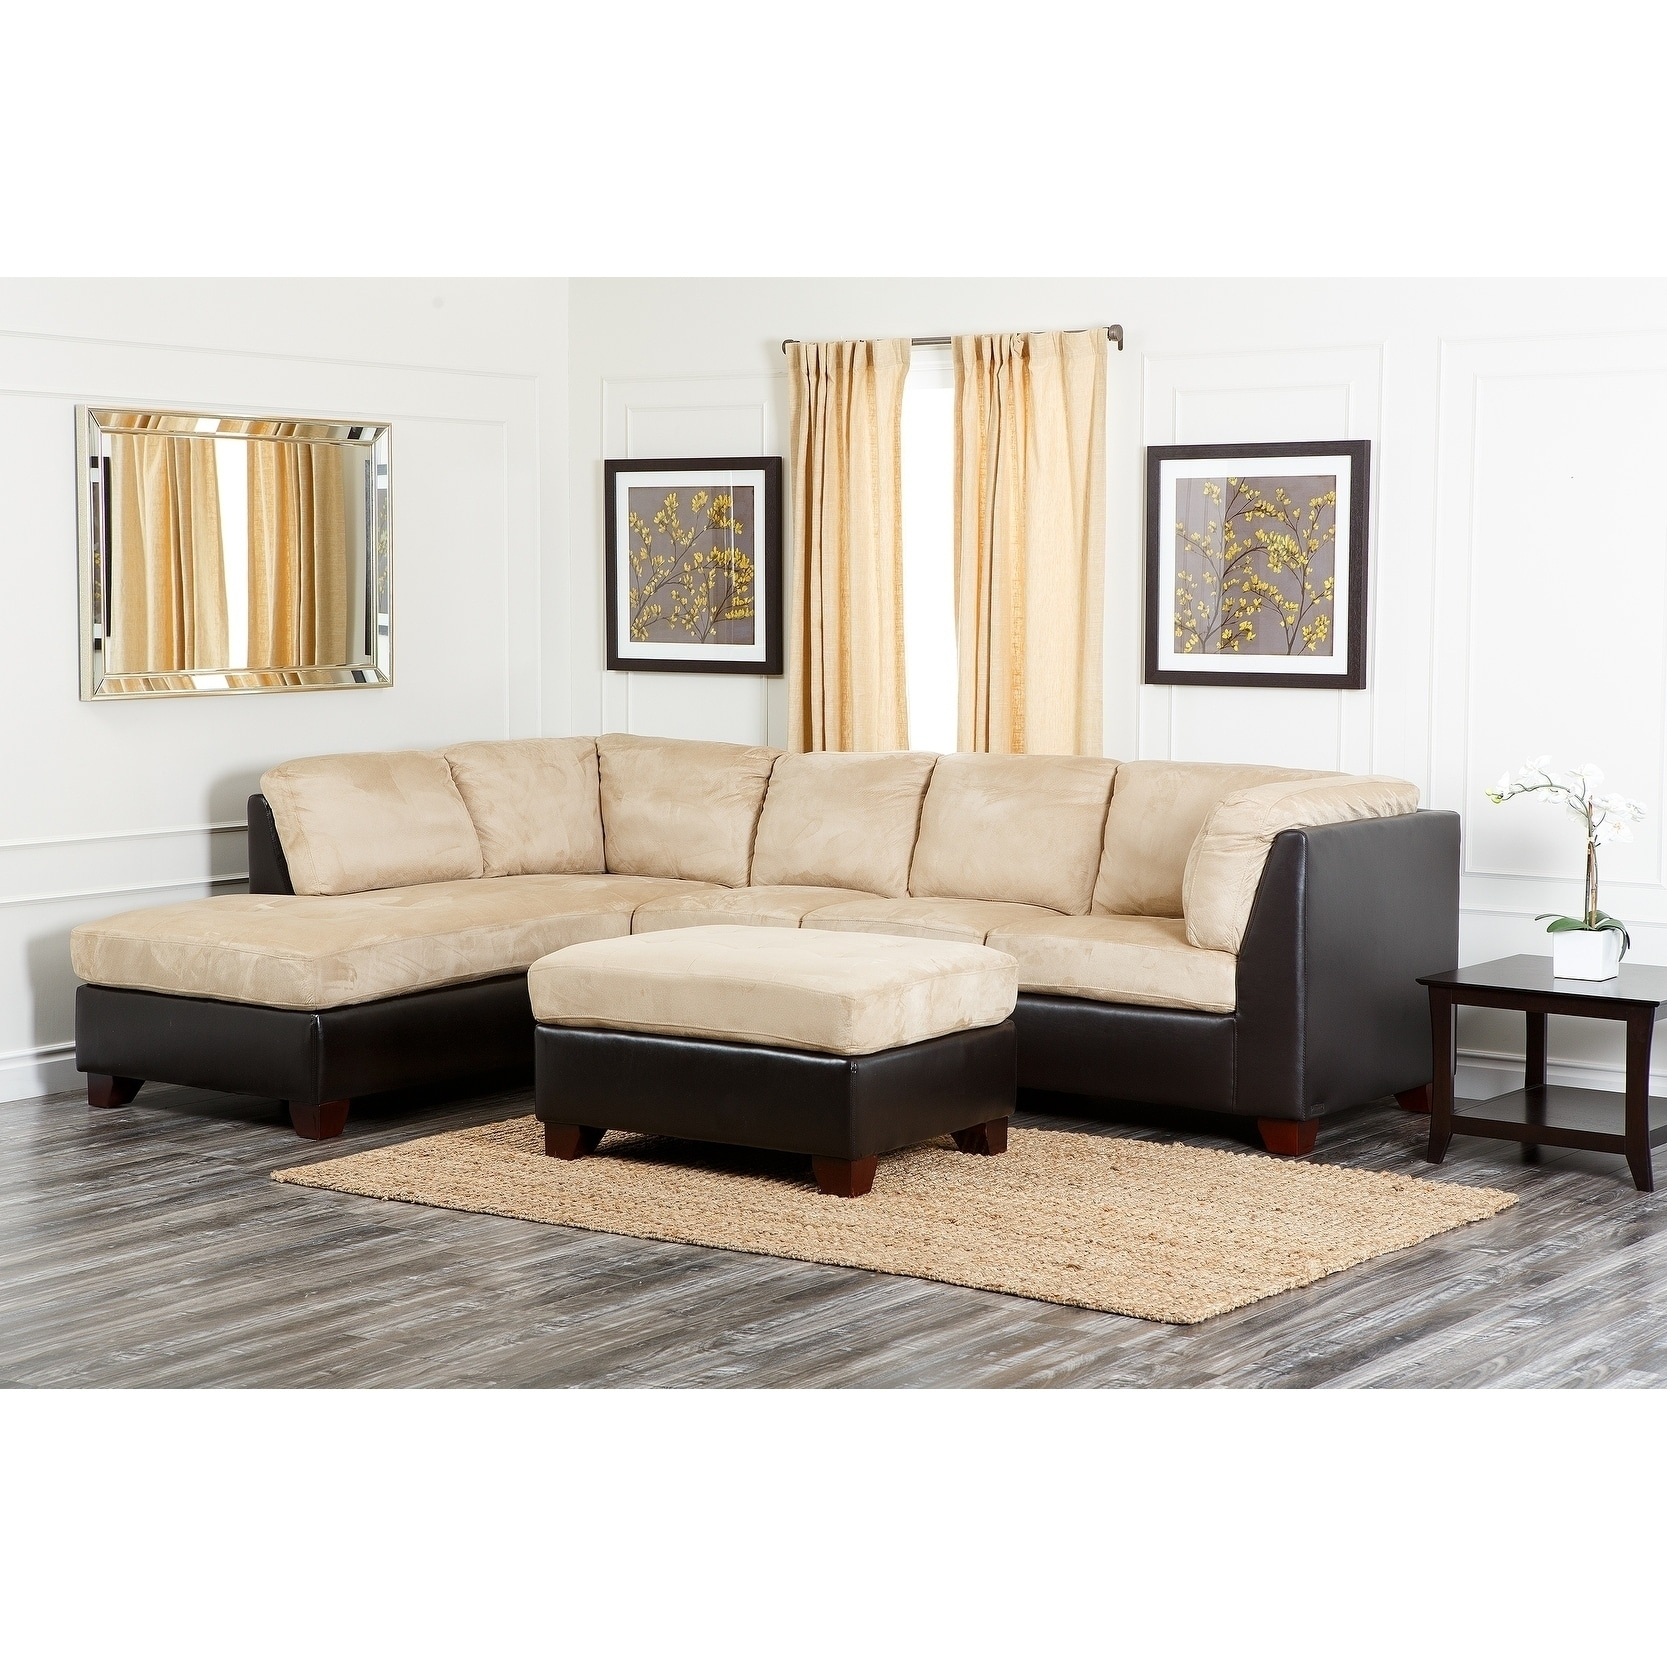 Coffee Table Ideas For Beige Sectional Sofa – Madison Art ...